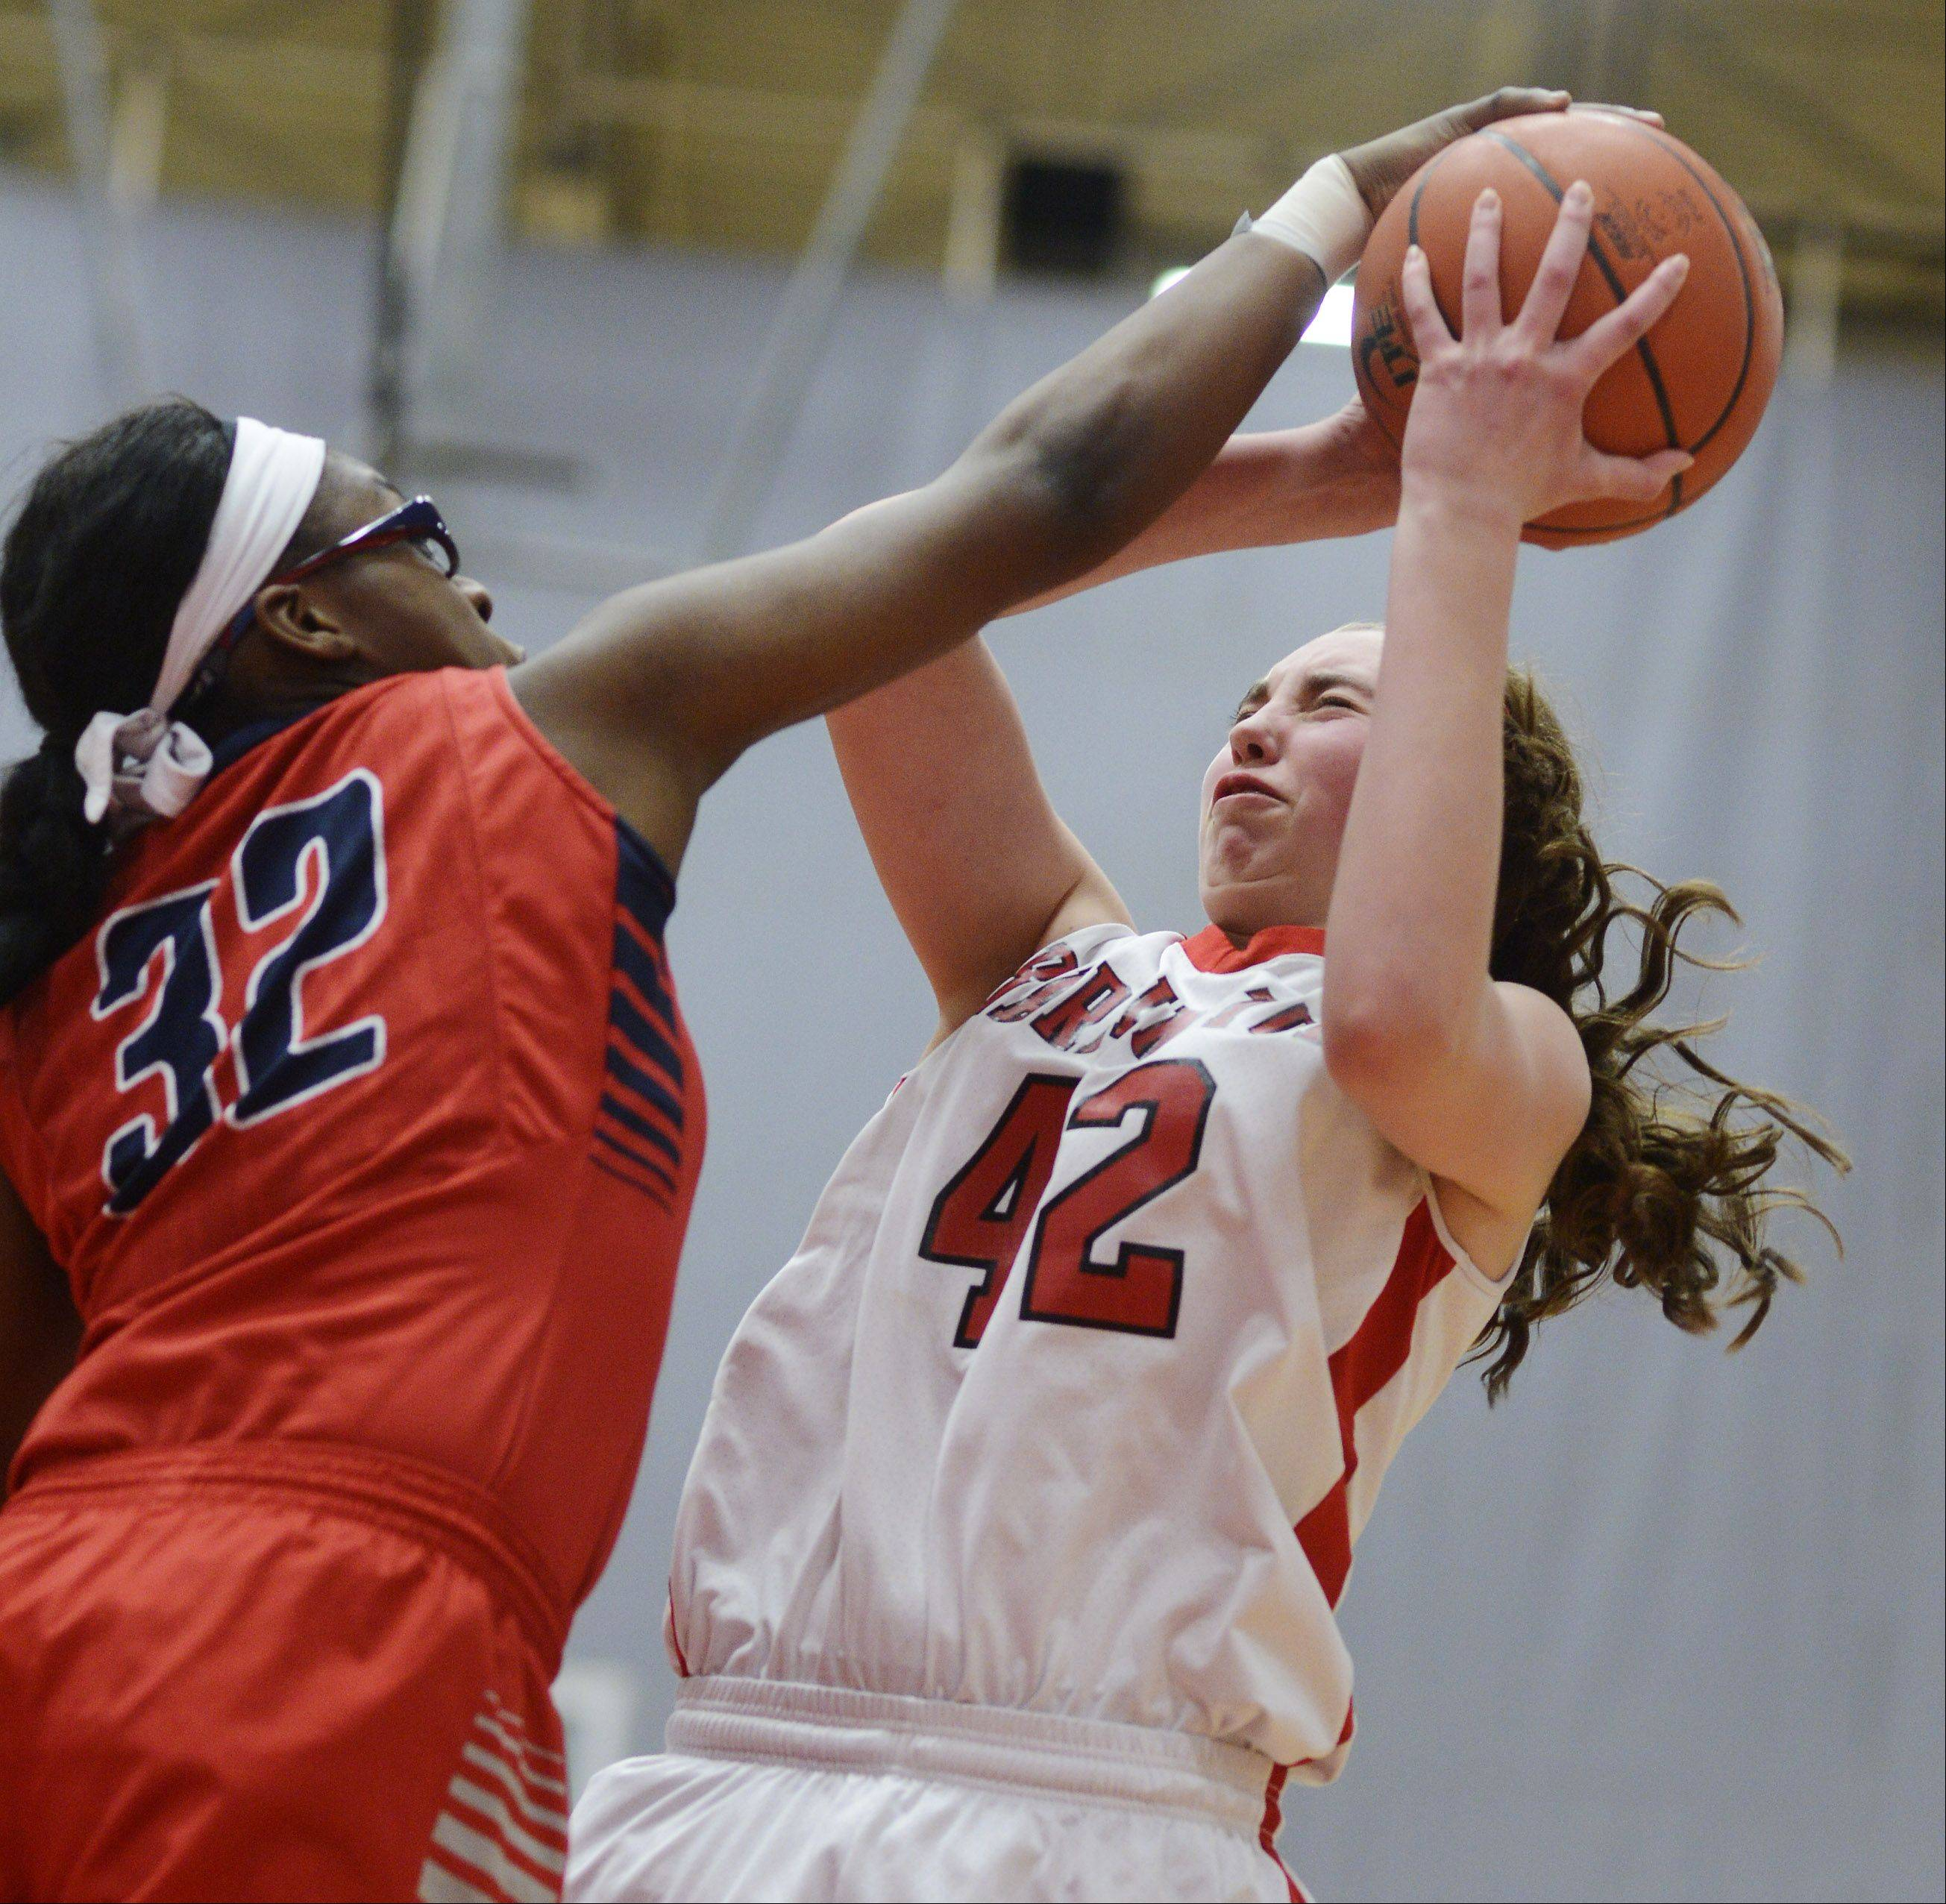 South Elgin's Bridgette Williams, left, blocks a shot by Barrington's Megan Talbot.